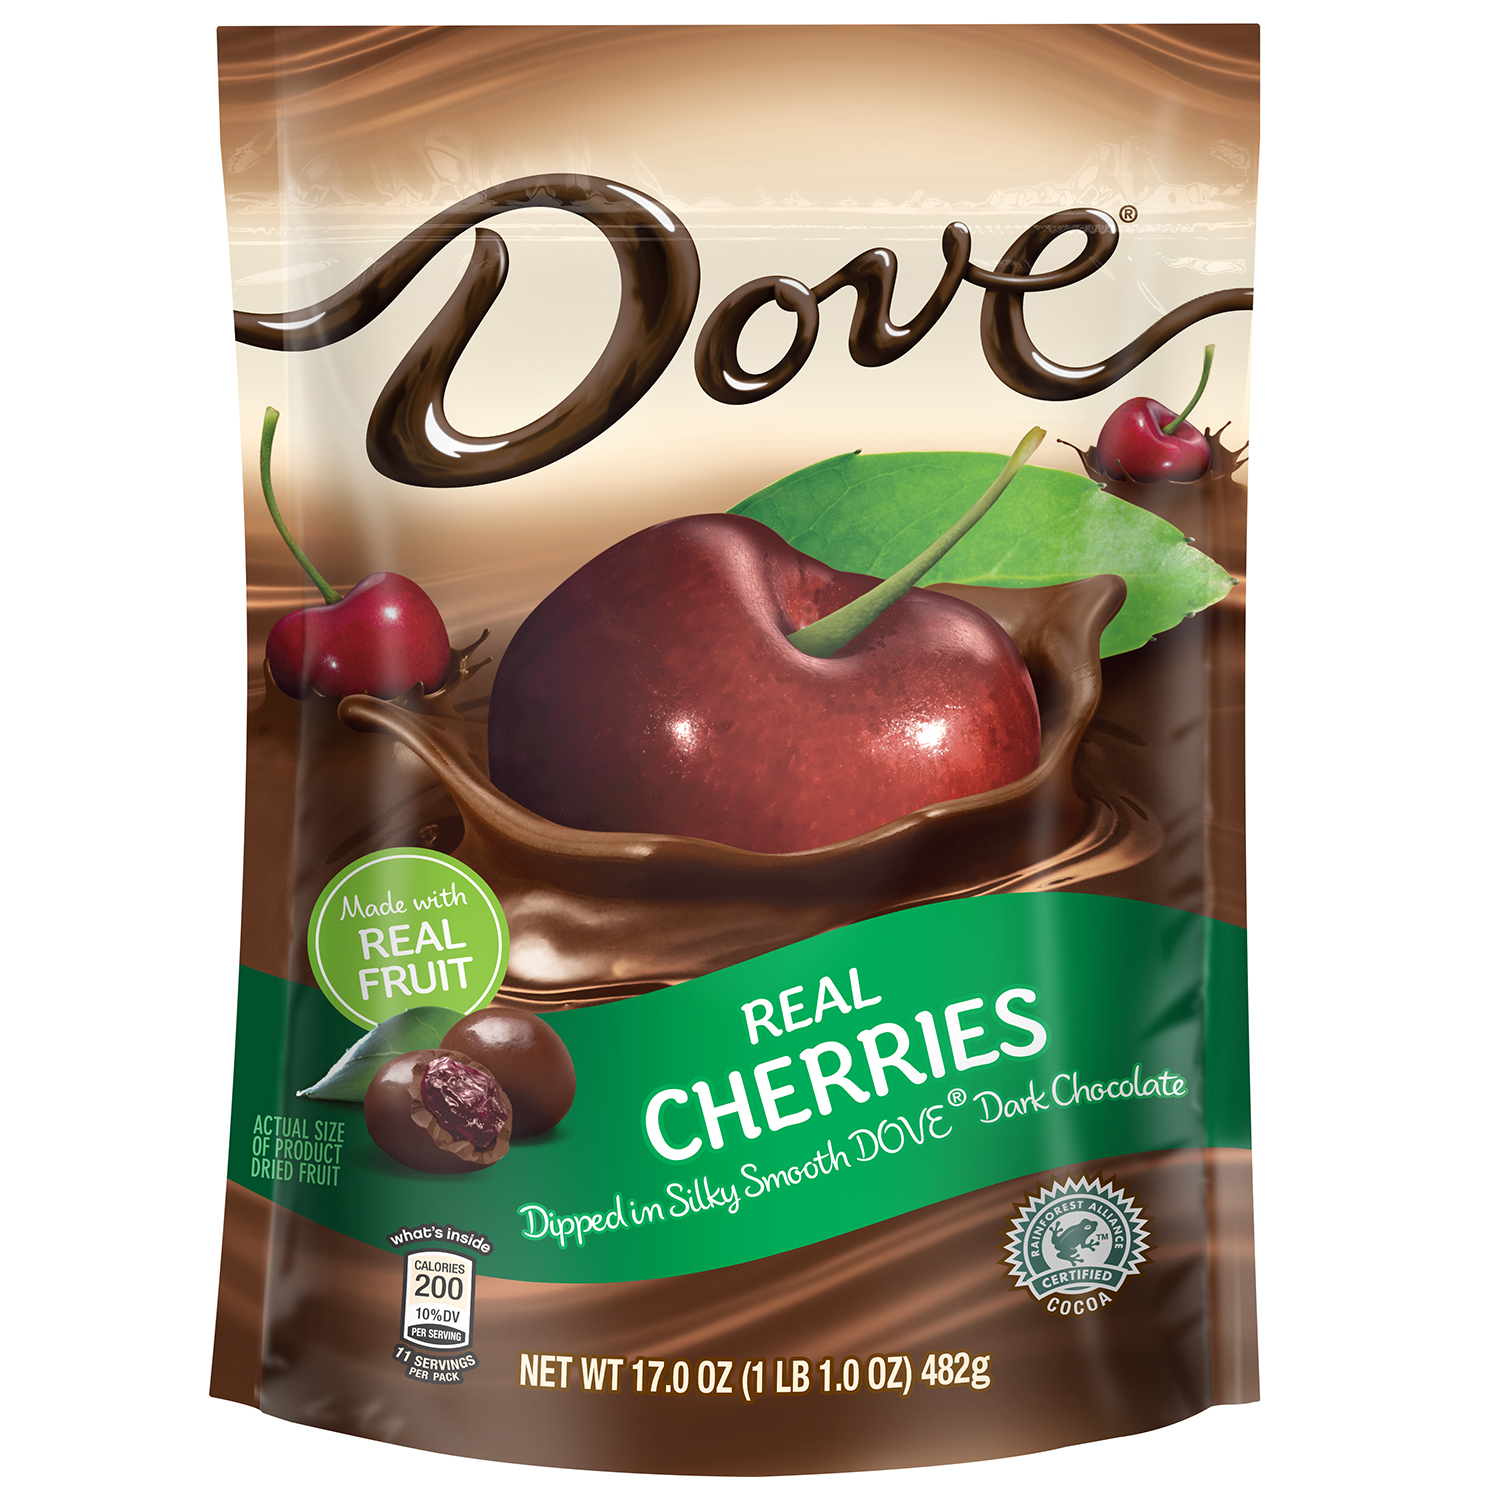 Dove Fruit Real Cherries with Dark Chocolate, 17.0 oz